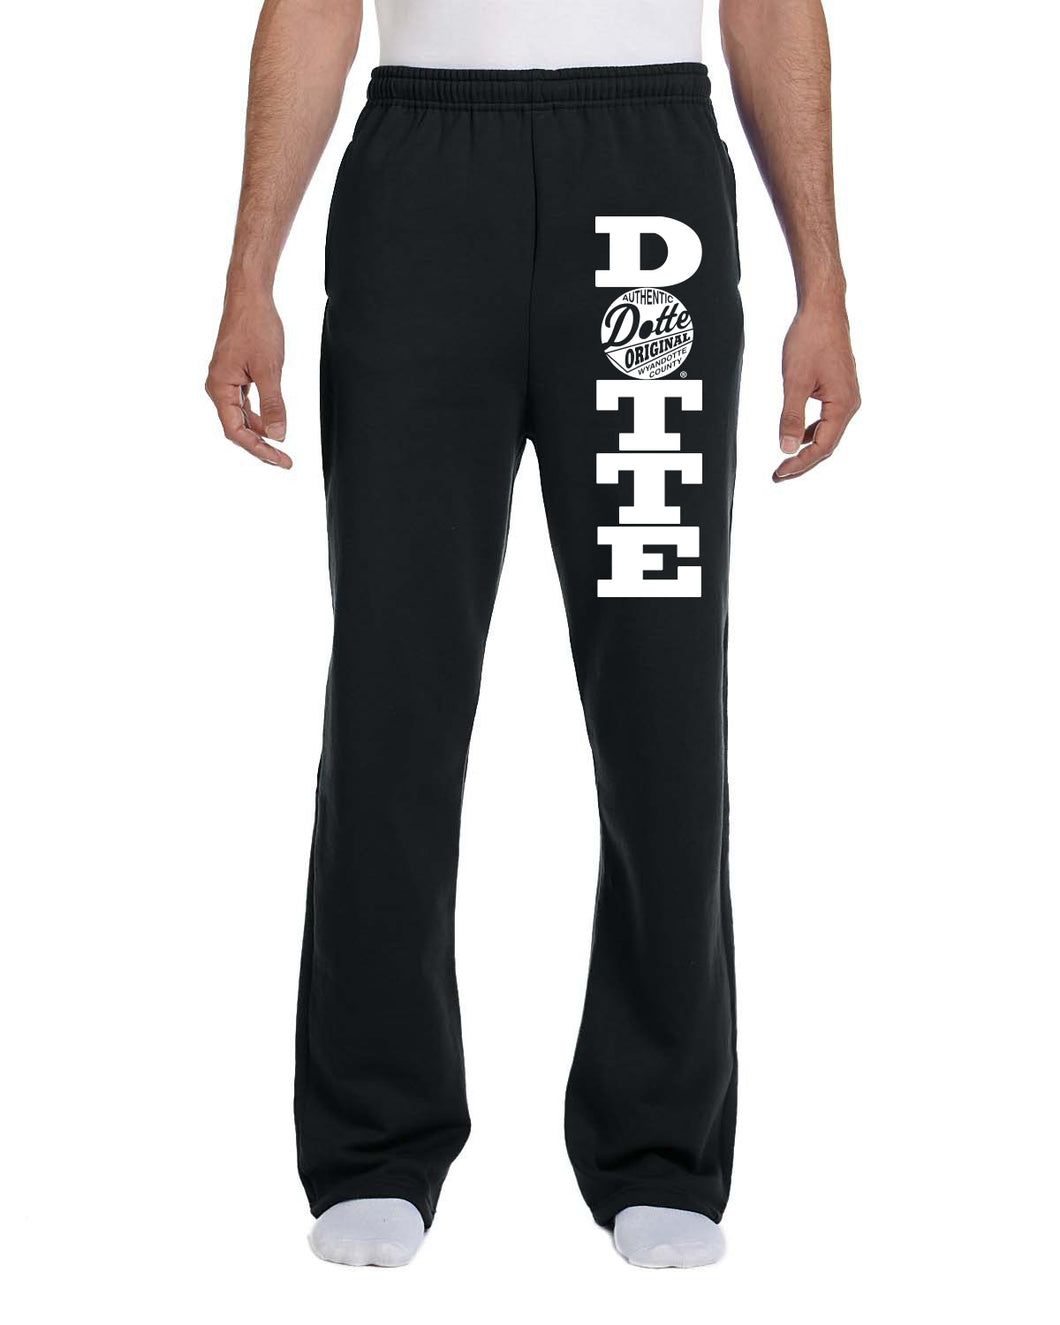 Adult Black Dotte Sweatpants